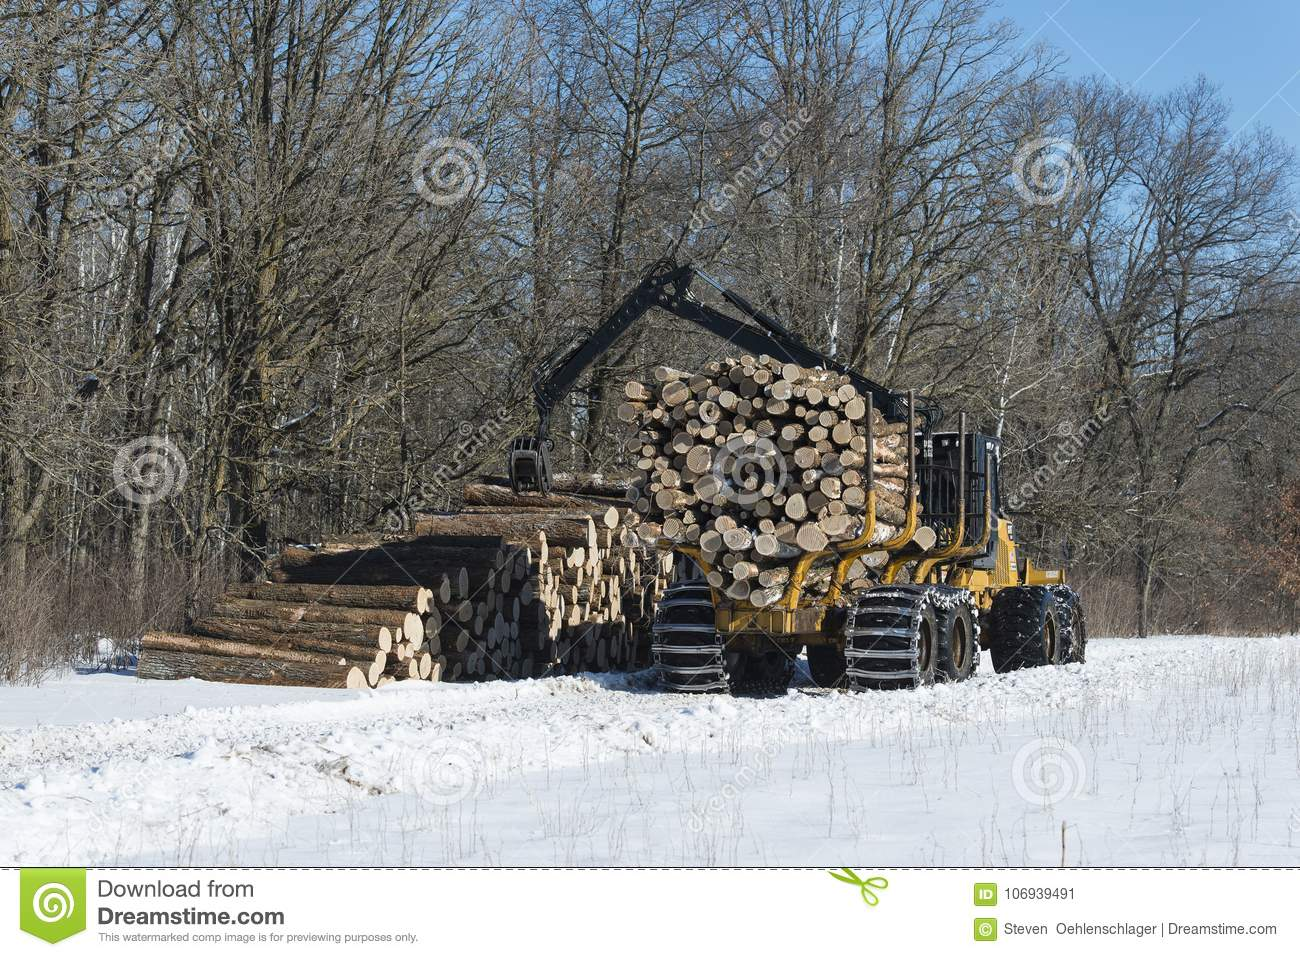 Logging in a central Minnesota forest